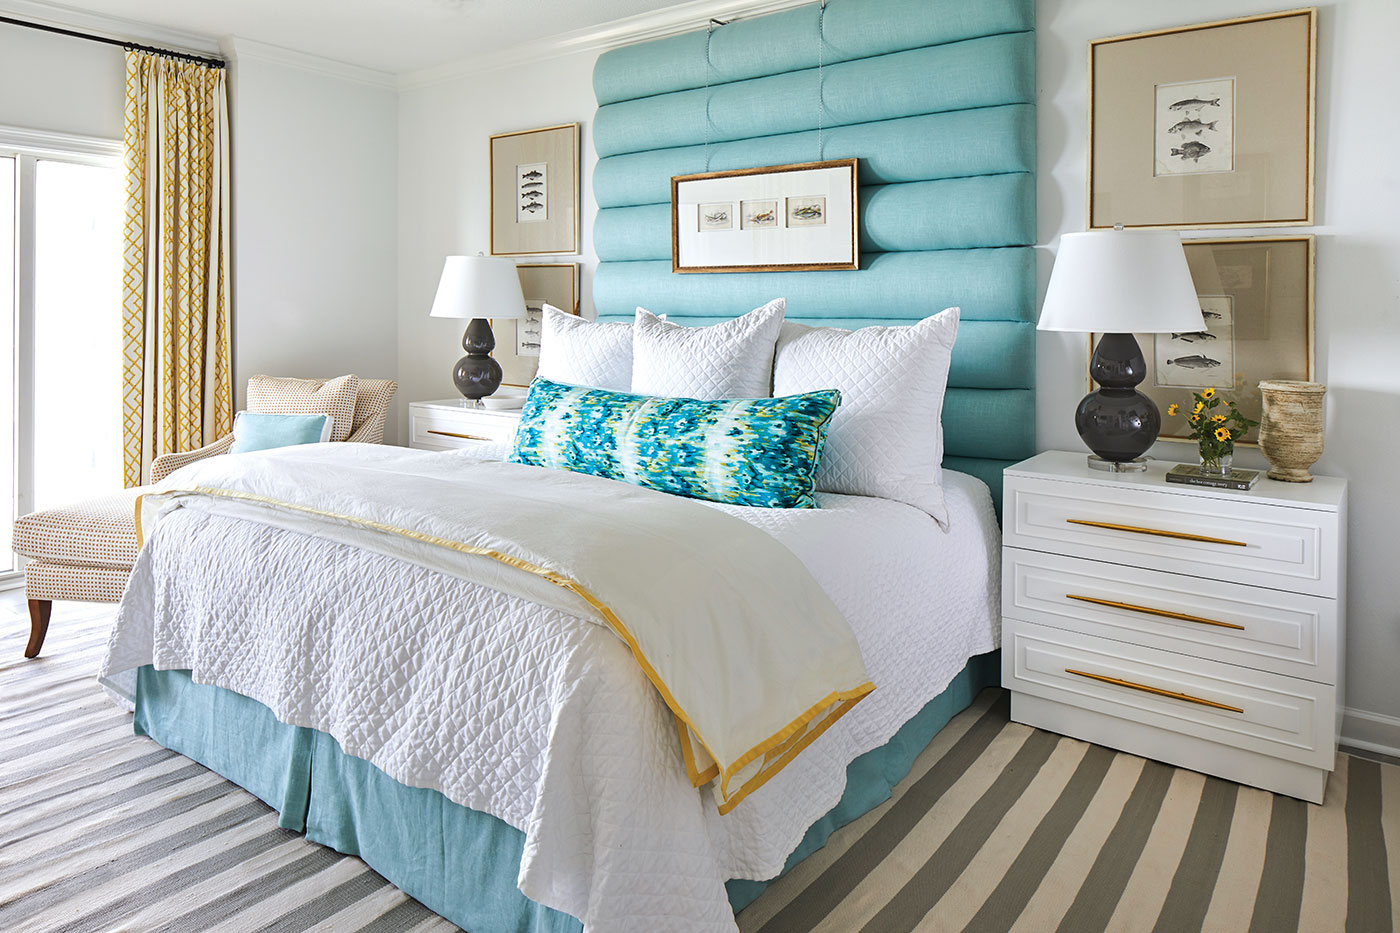 White bedroom with turquoise accents